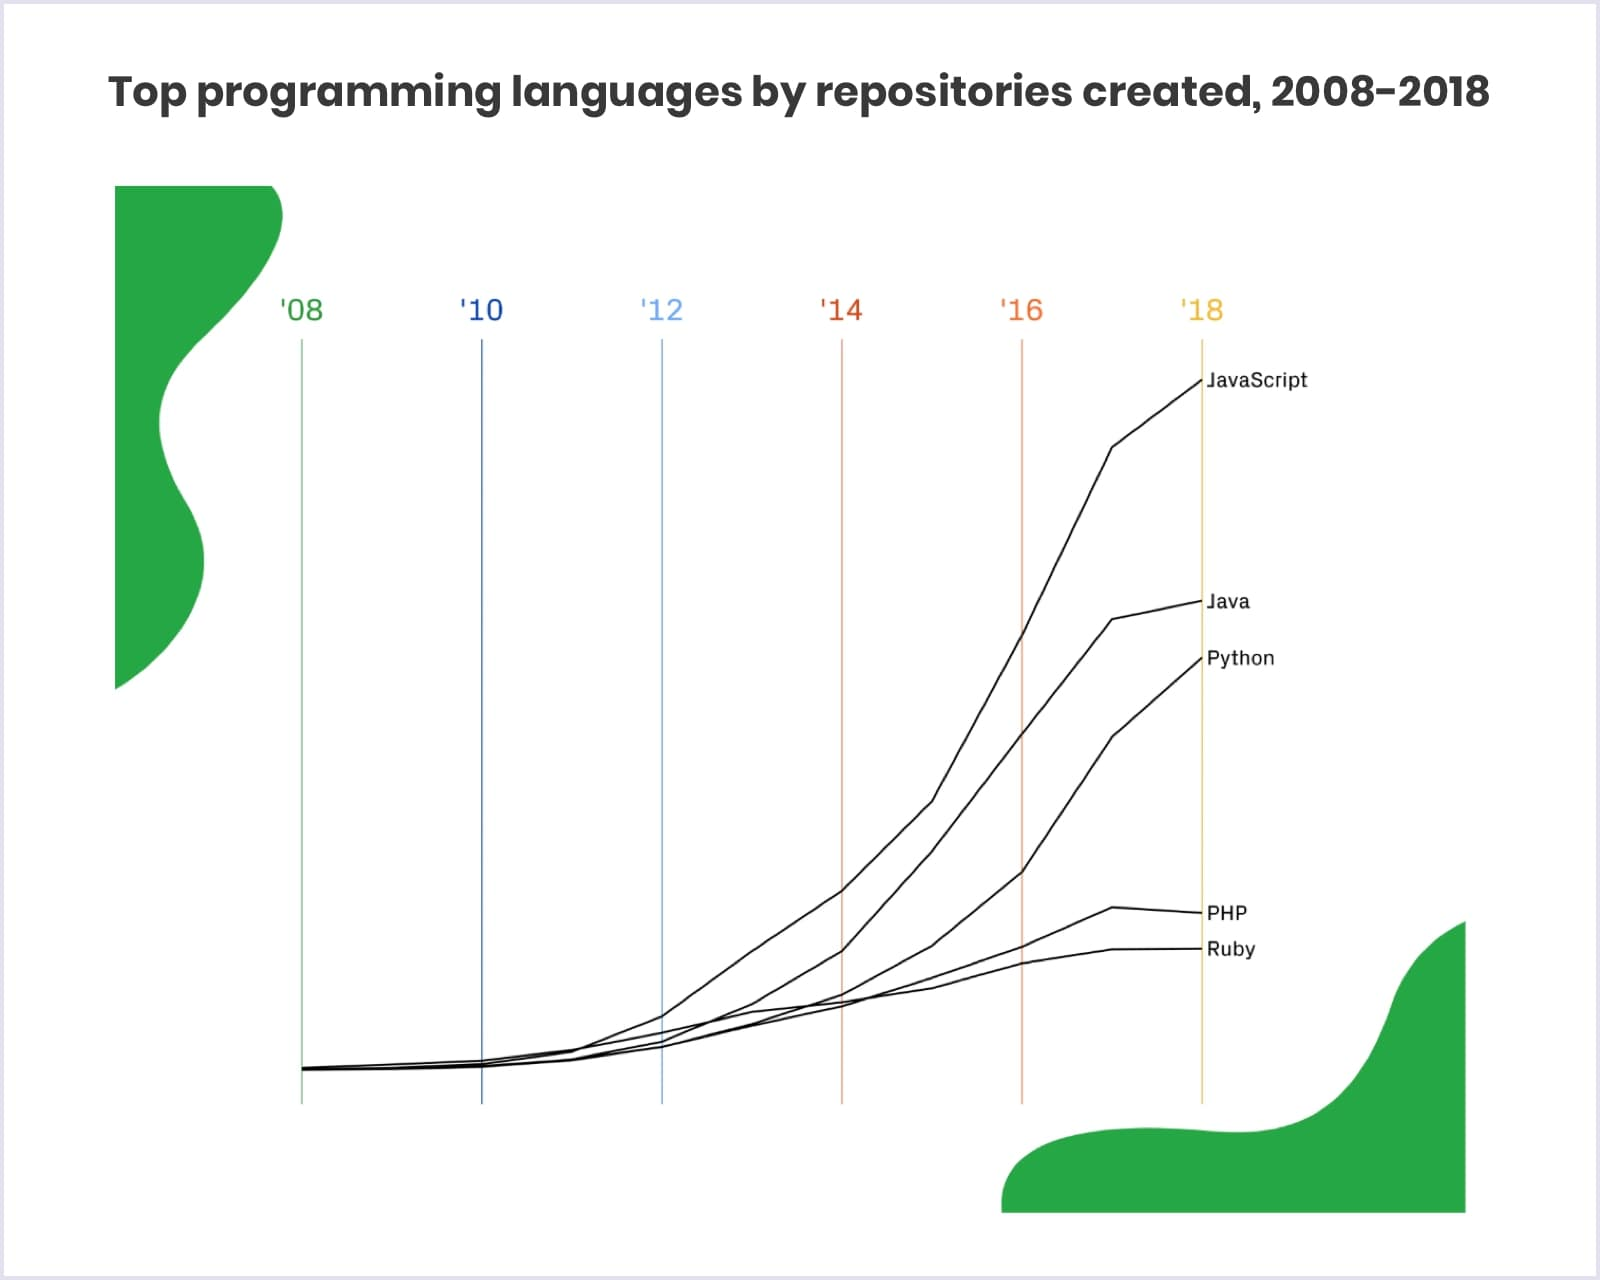 Top programming languages by Github repositories created, 2008-2018